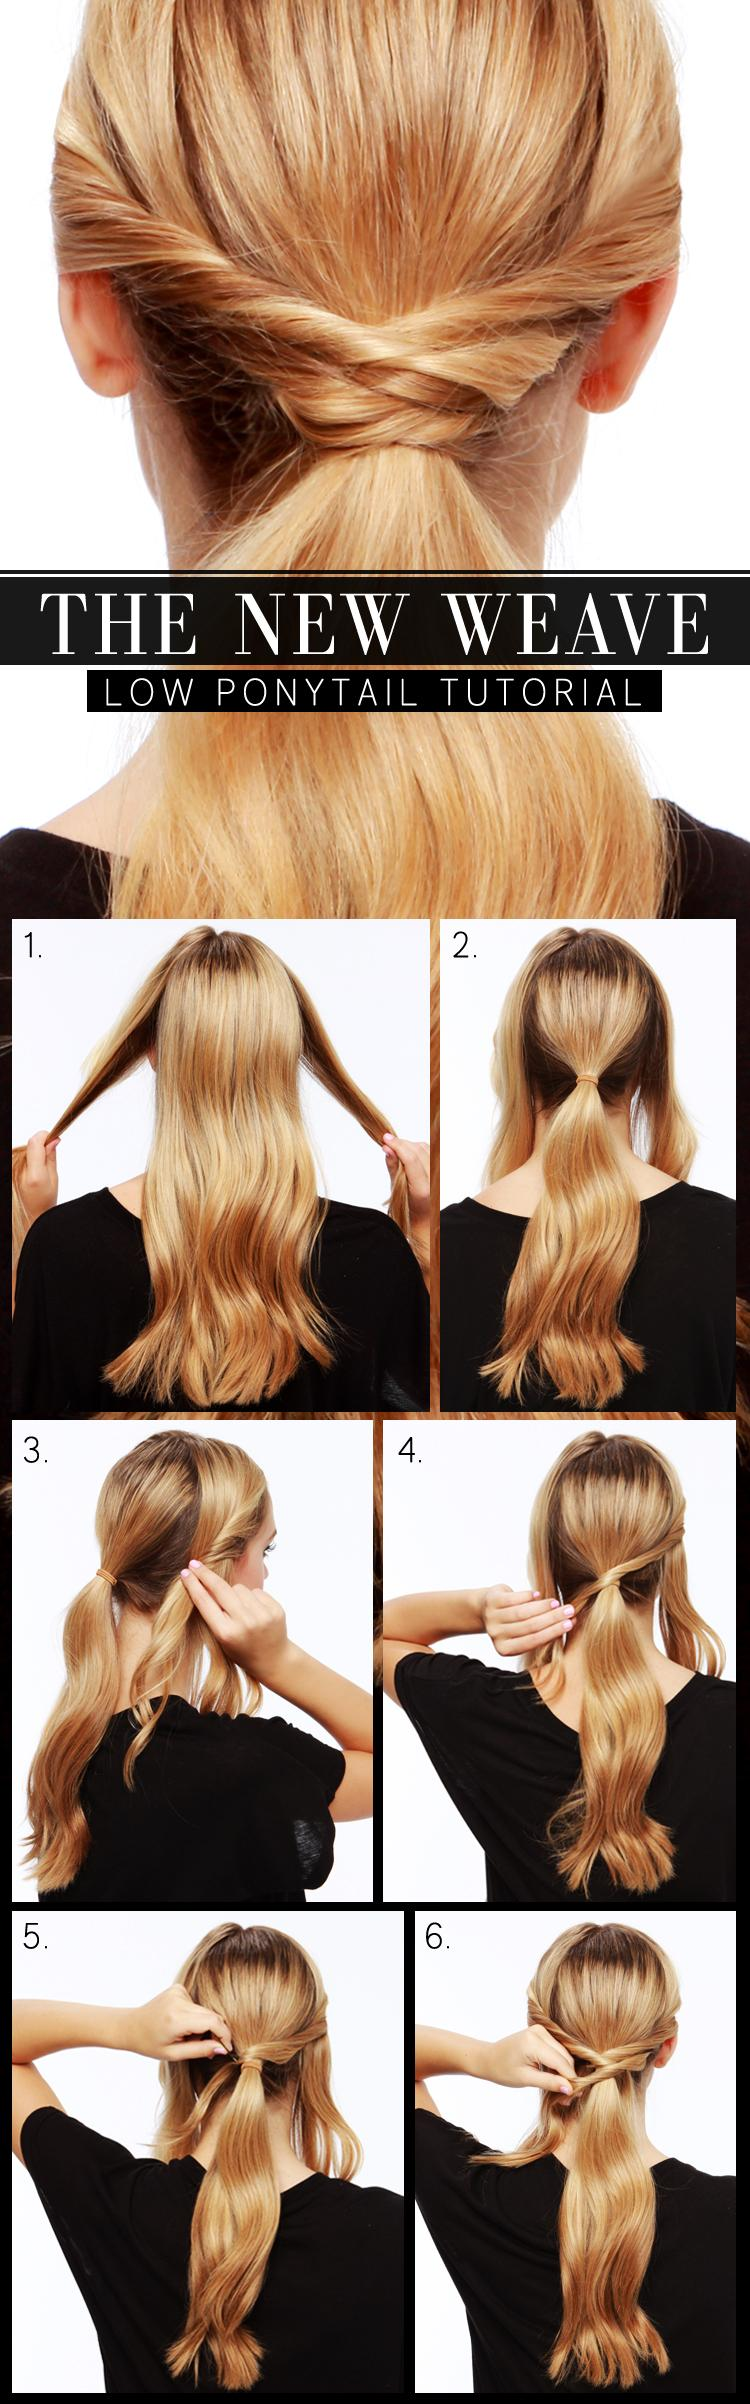 21 Easy Hair Styles To Save You In Hot Summer Days Onedio